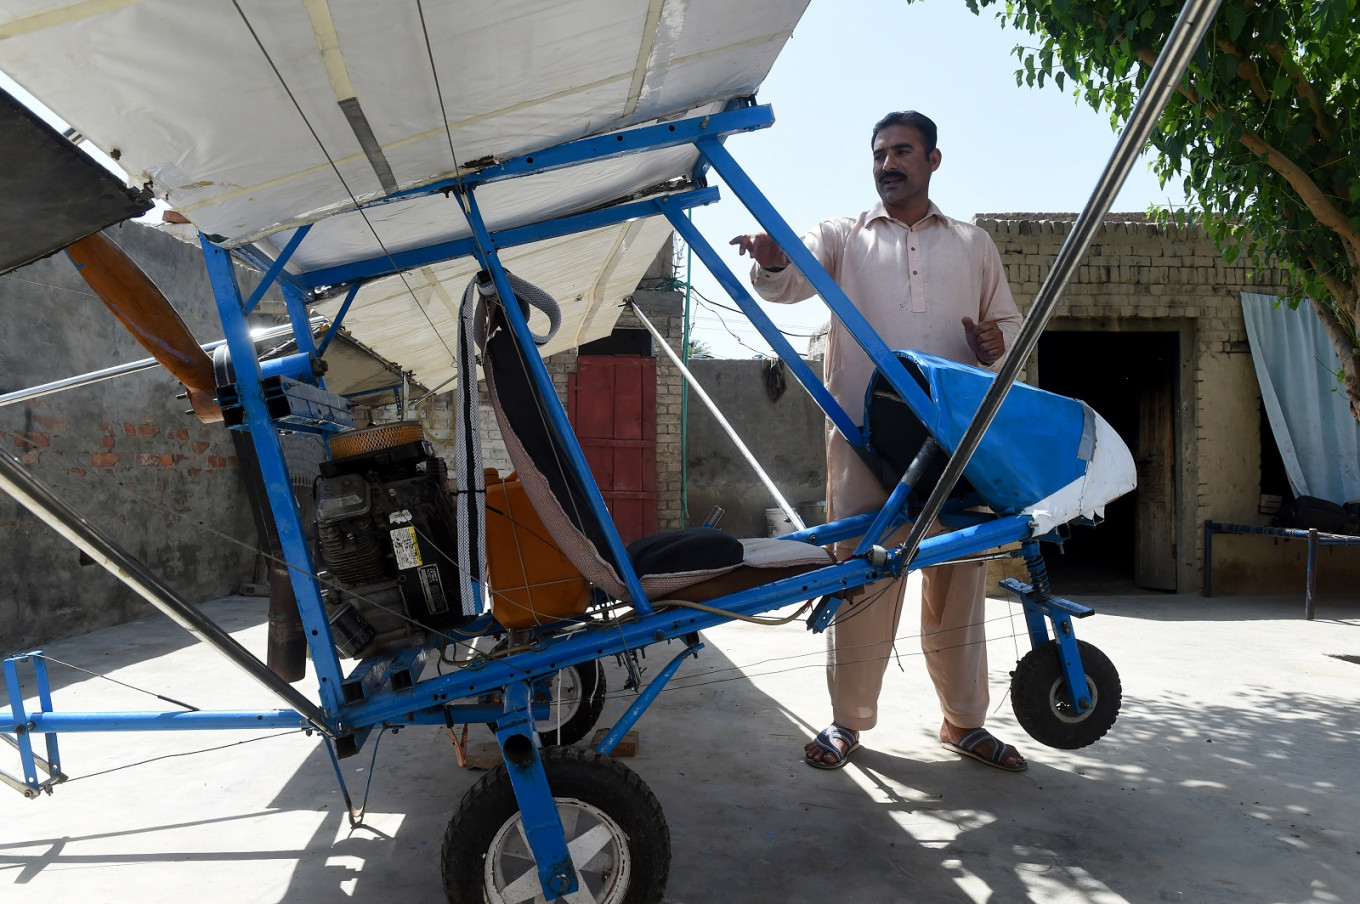 The Pakistani popcorn seller who built his own plane